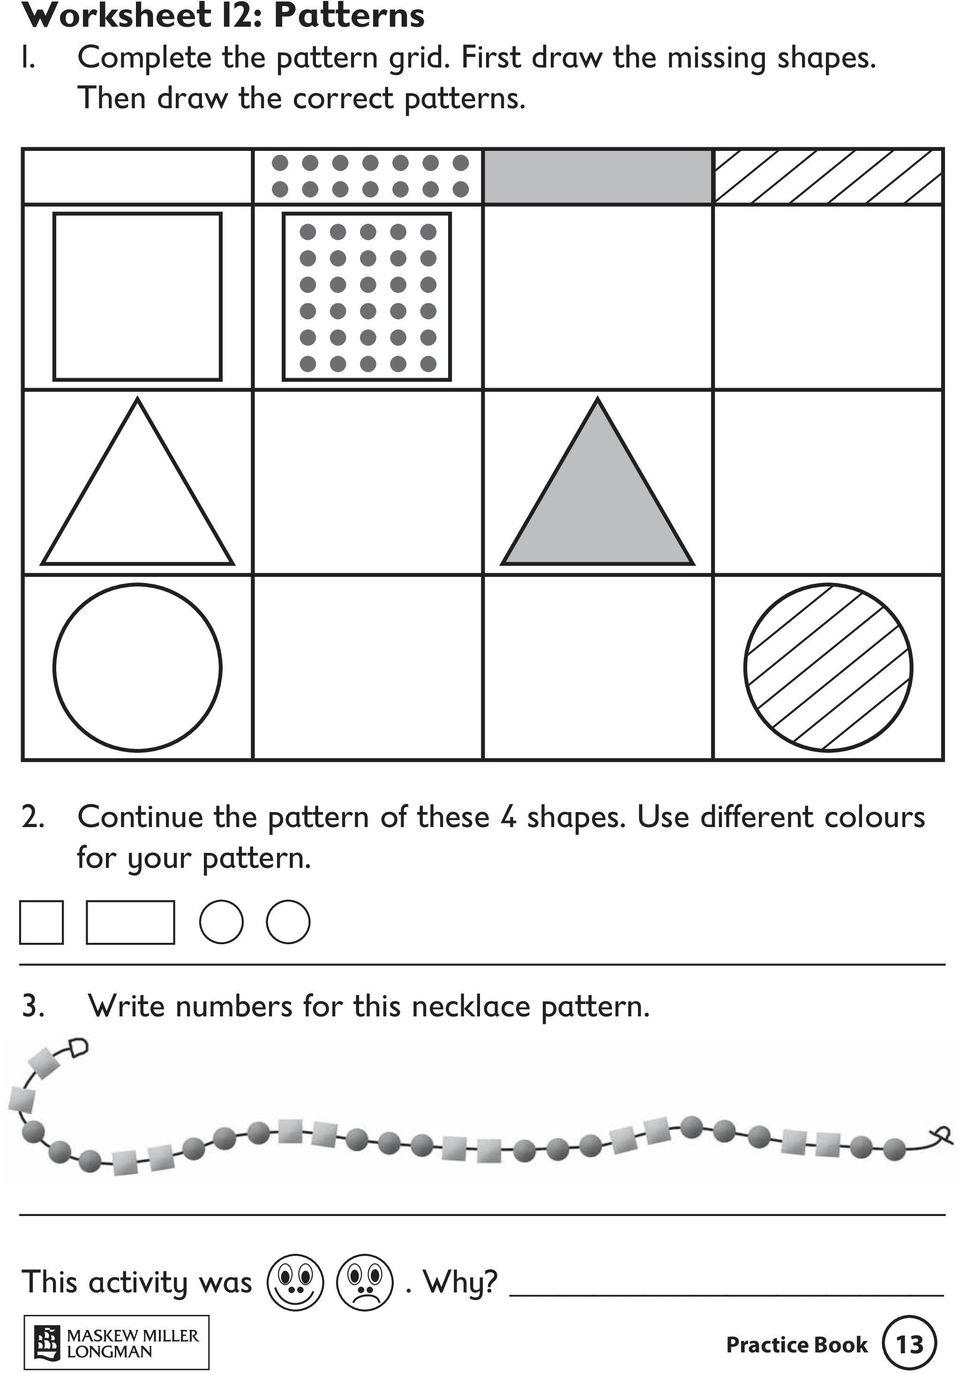 Continue the pattern of these 4 shapes.